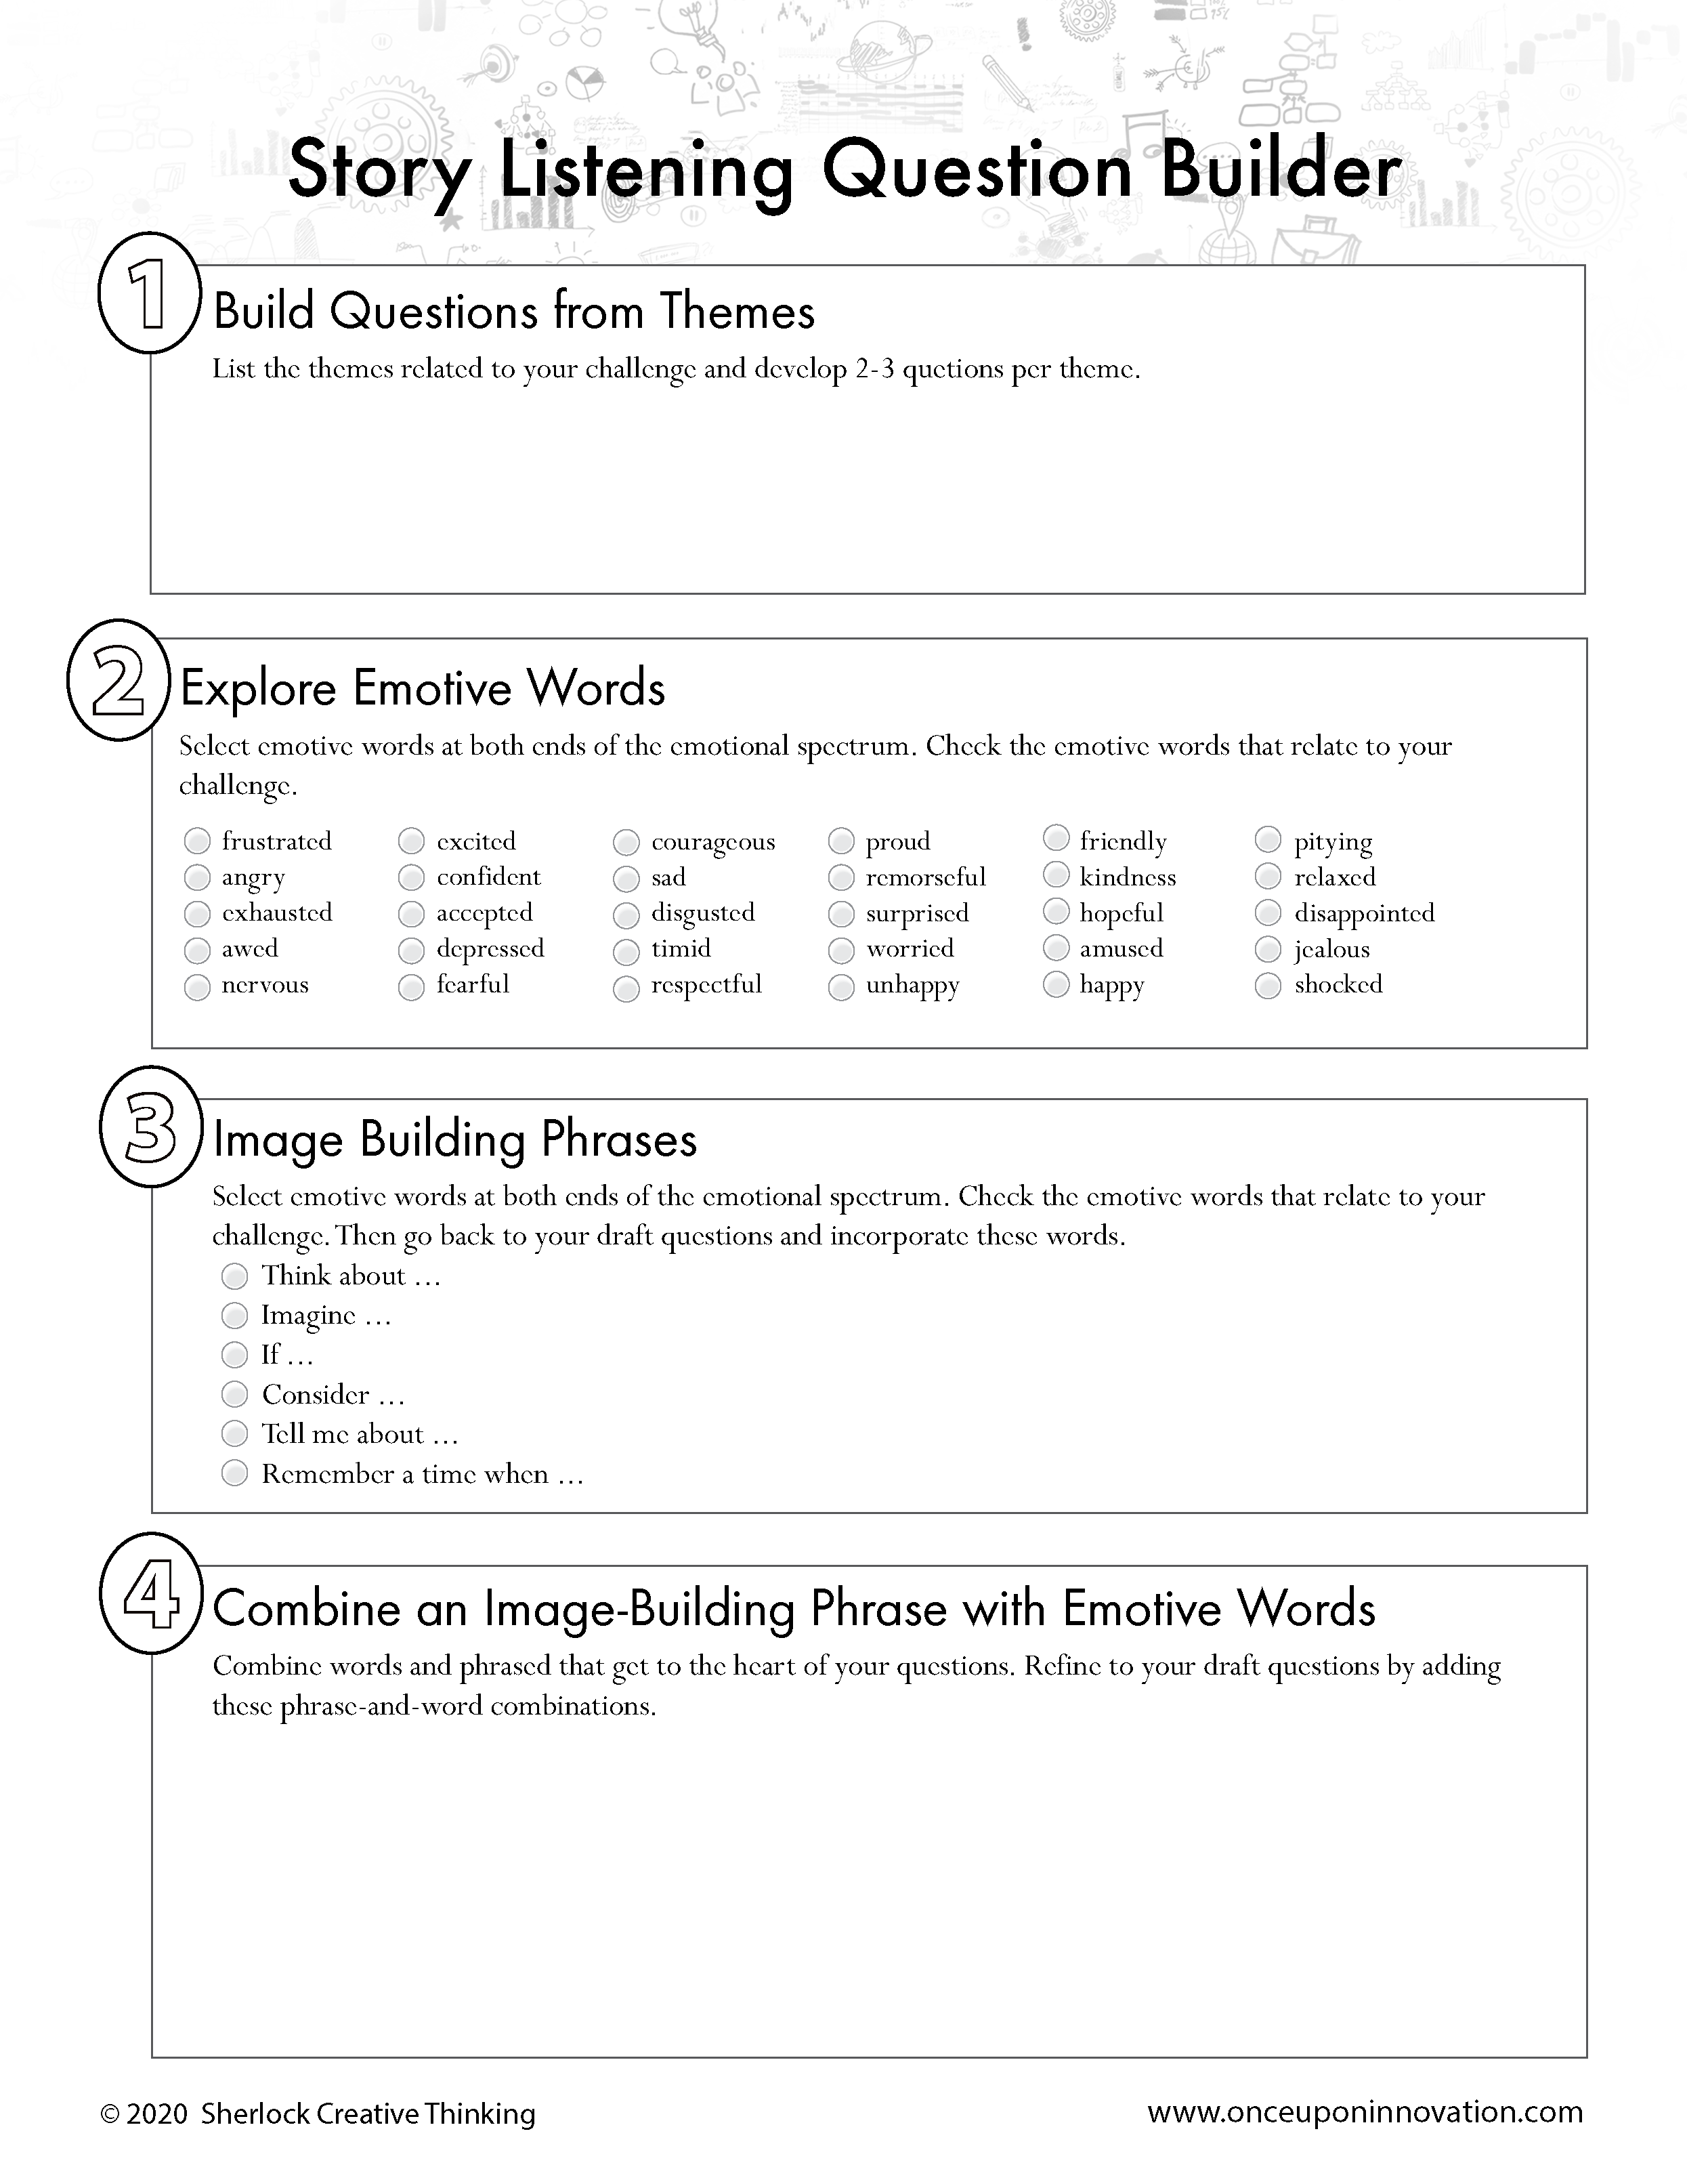 Story Listening Question Builder